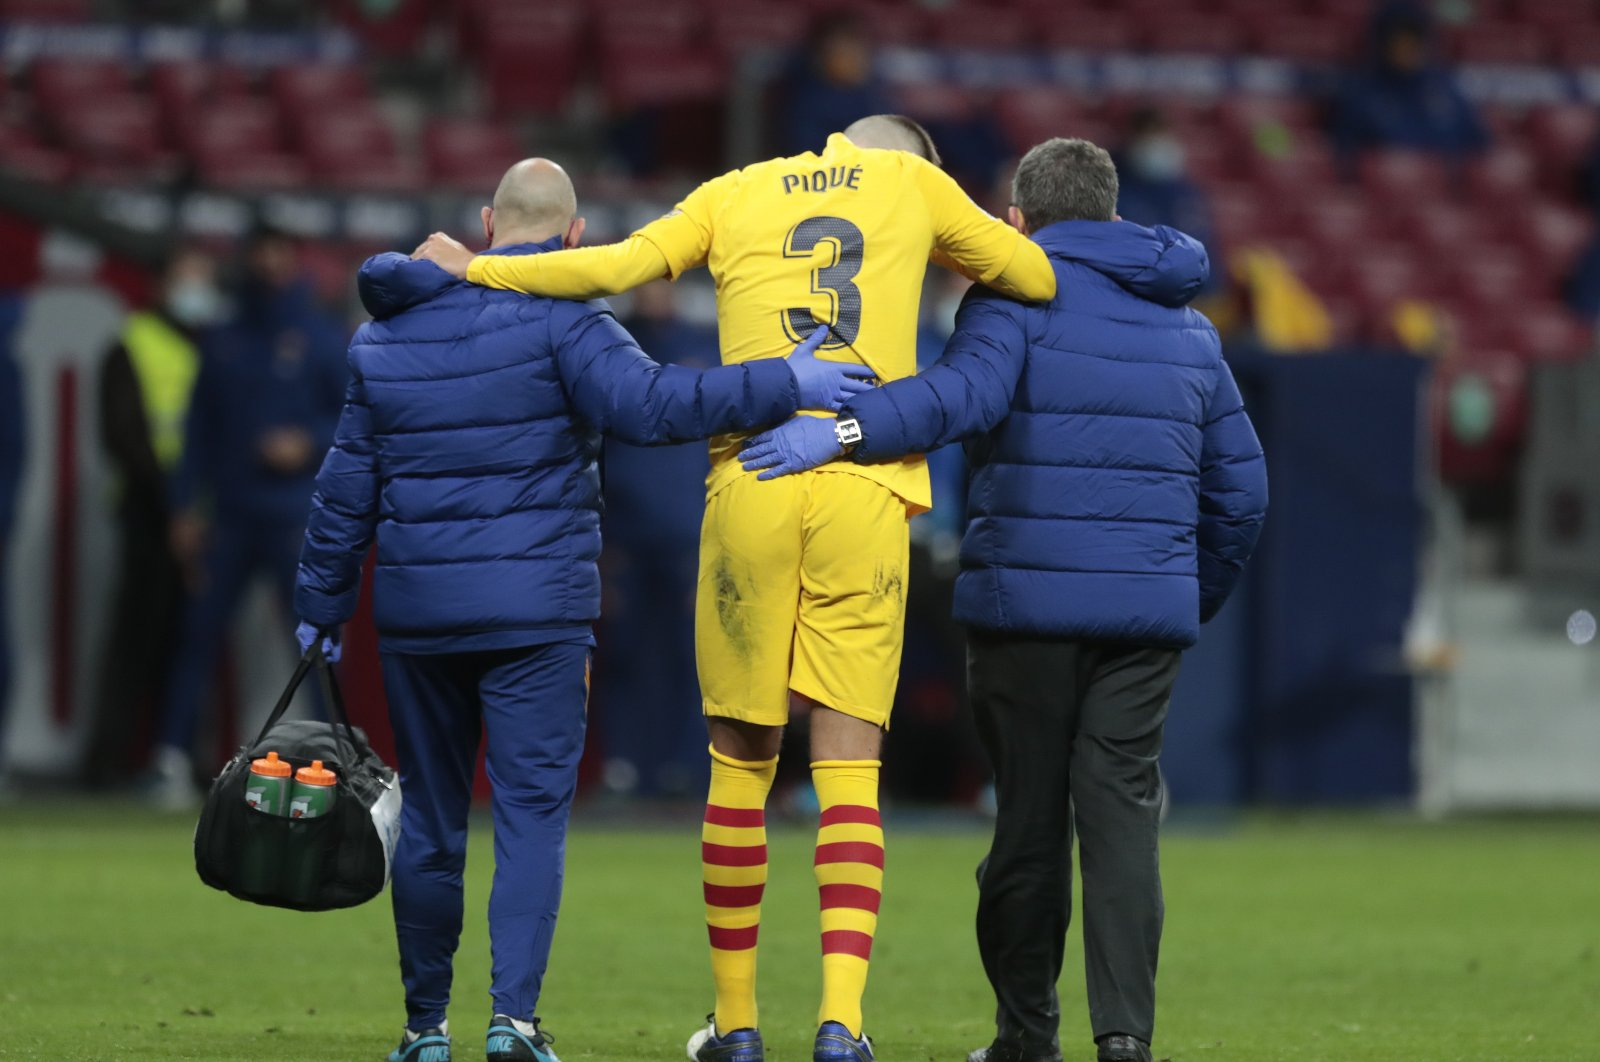 Barcelona's Gerard Pique is assisted off the pitch after getting injured, Madrid, Spain, Nov. 21, 2020. (AP Photo)